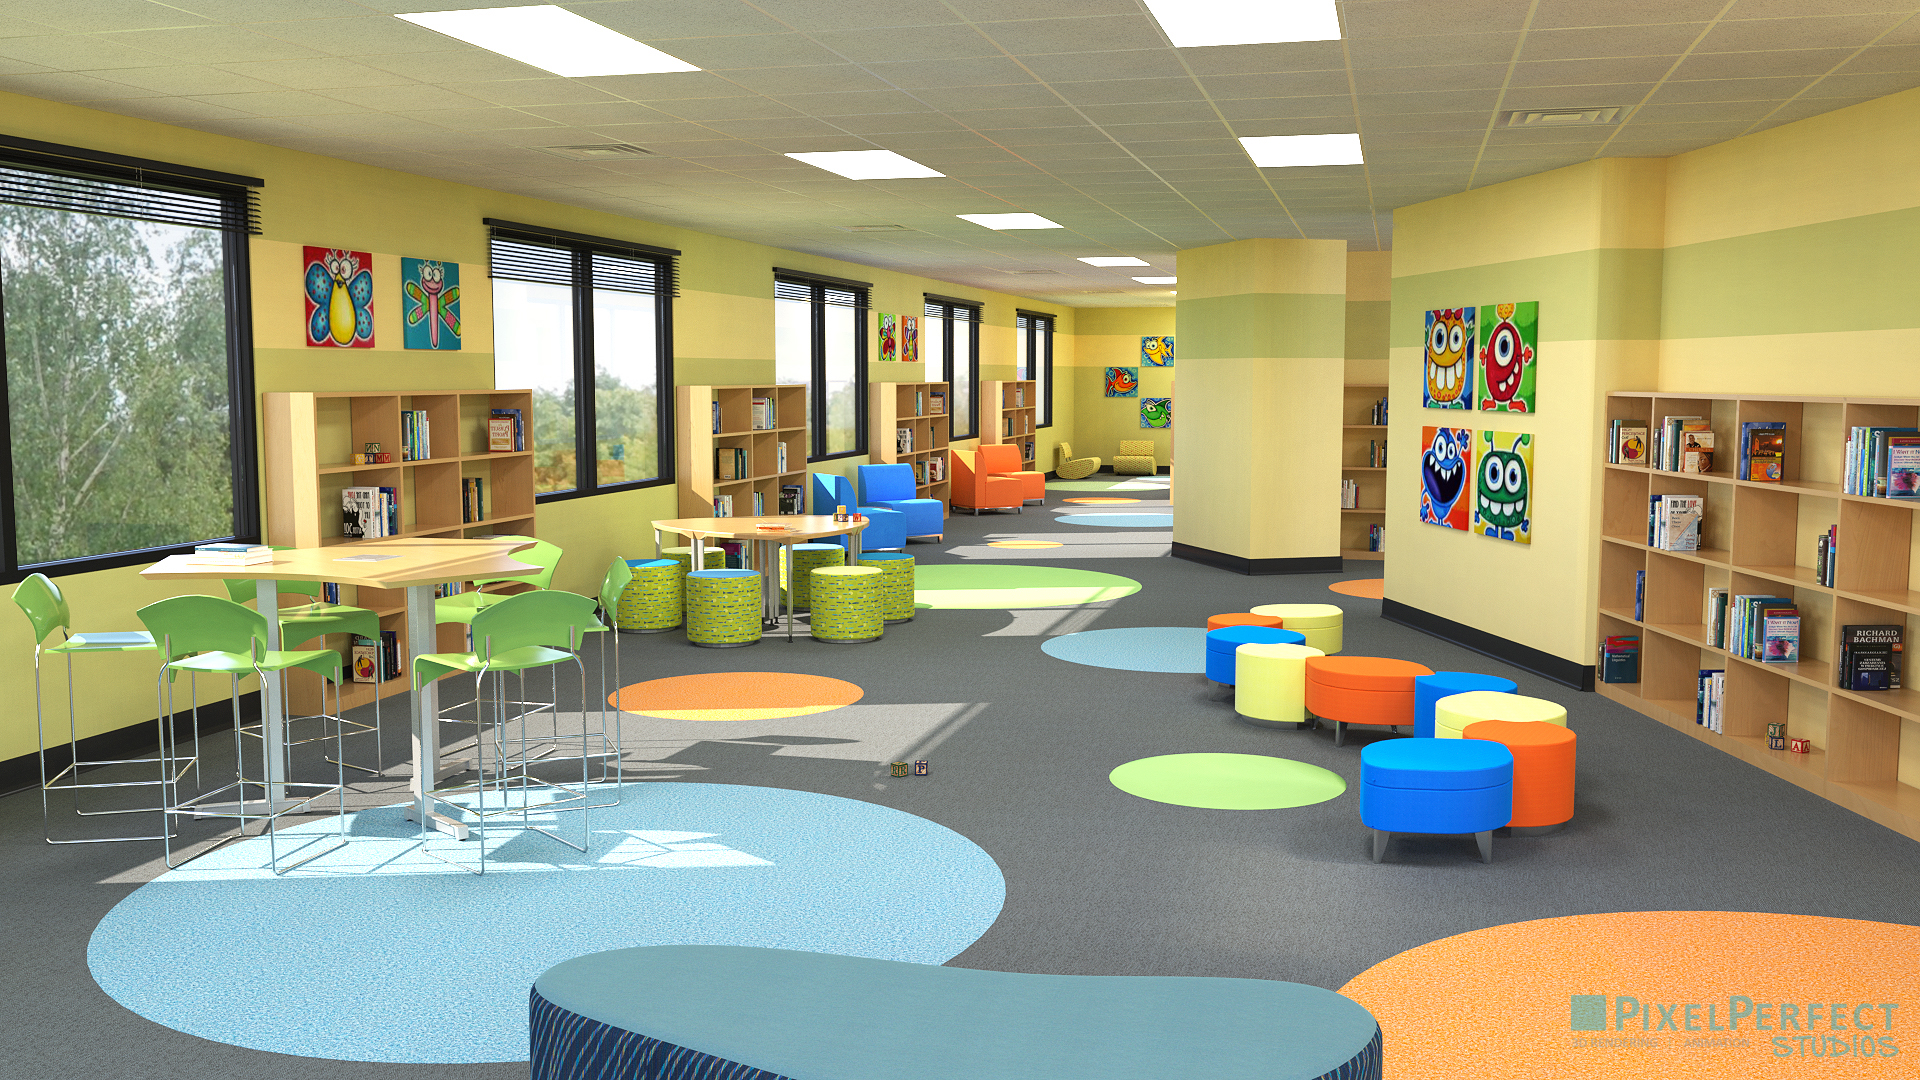 Philadelphia In The Fall Wallpaper Pixel Perfect 3d Rendering Kids Daycare Playroom